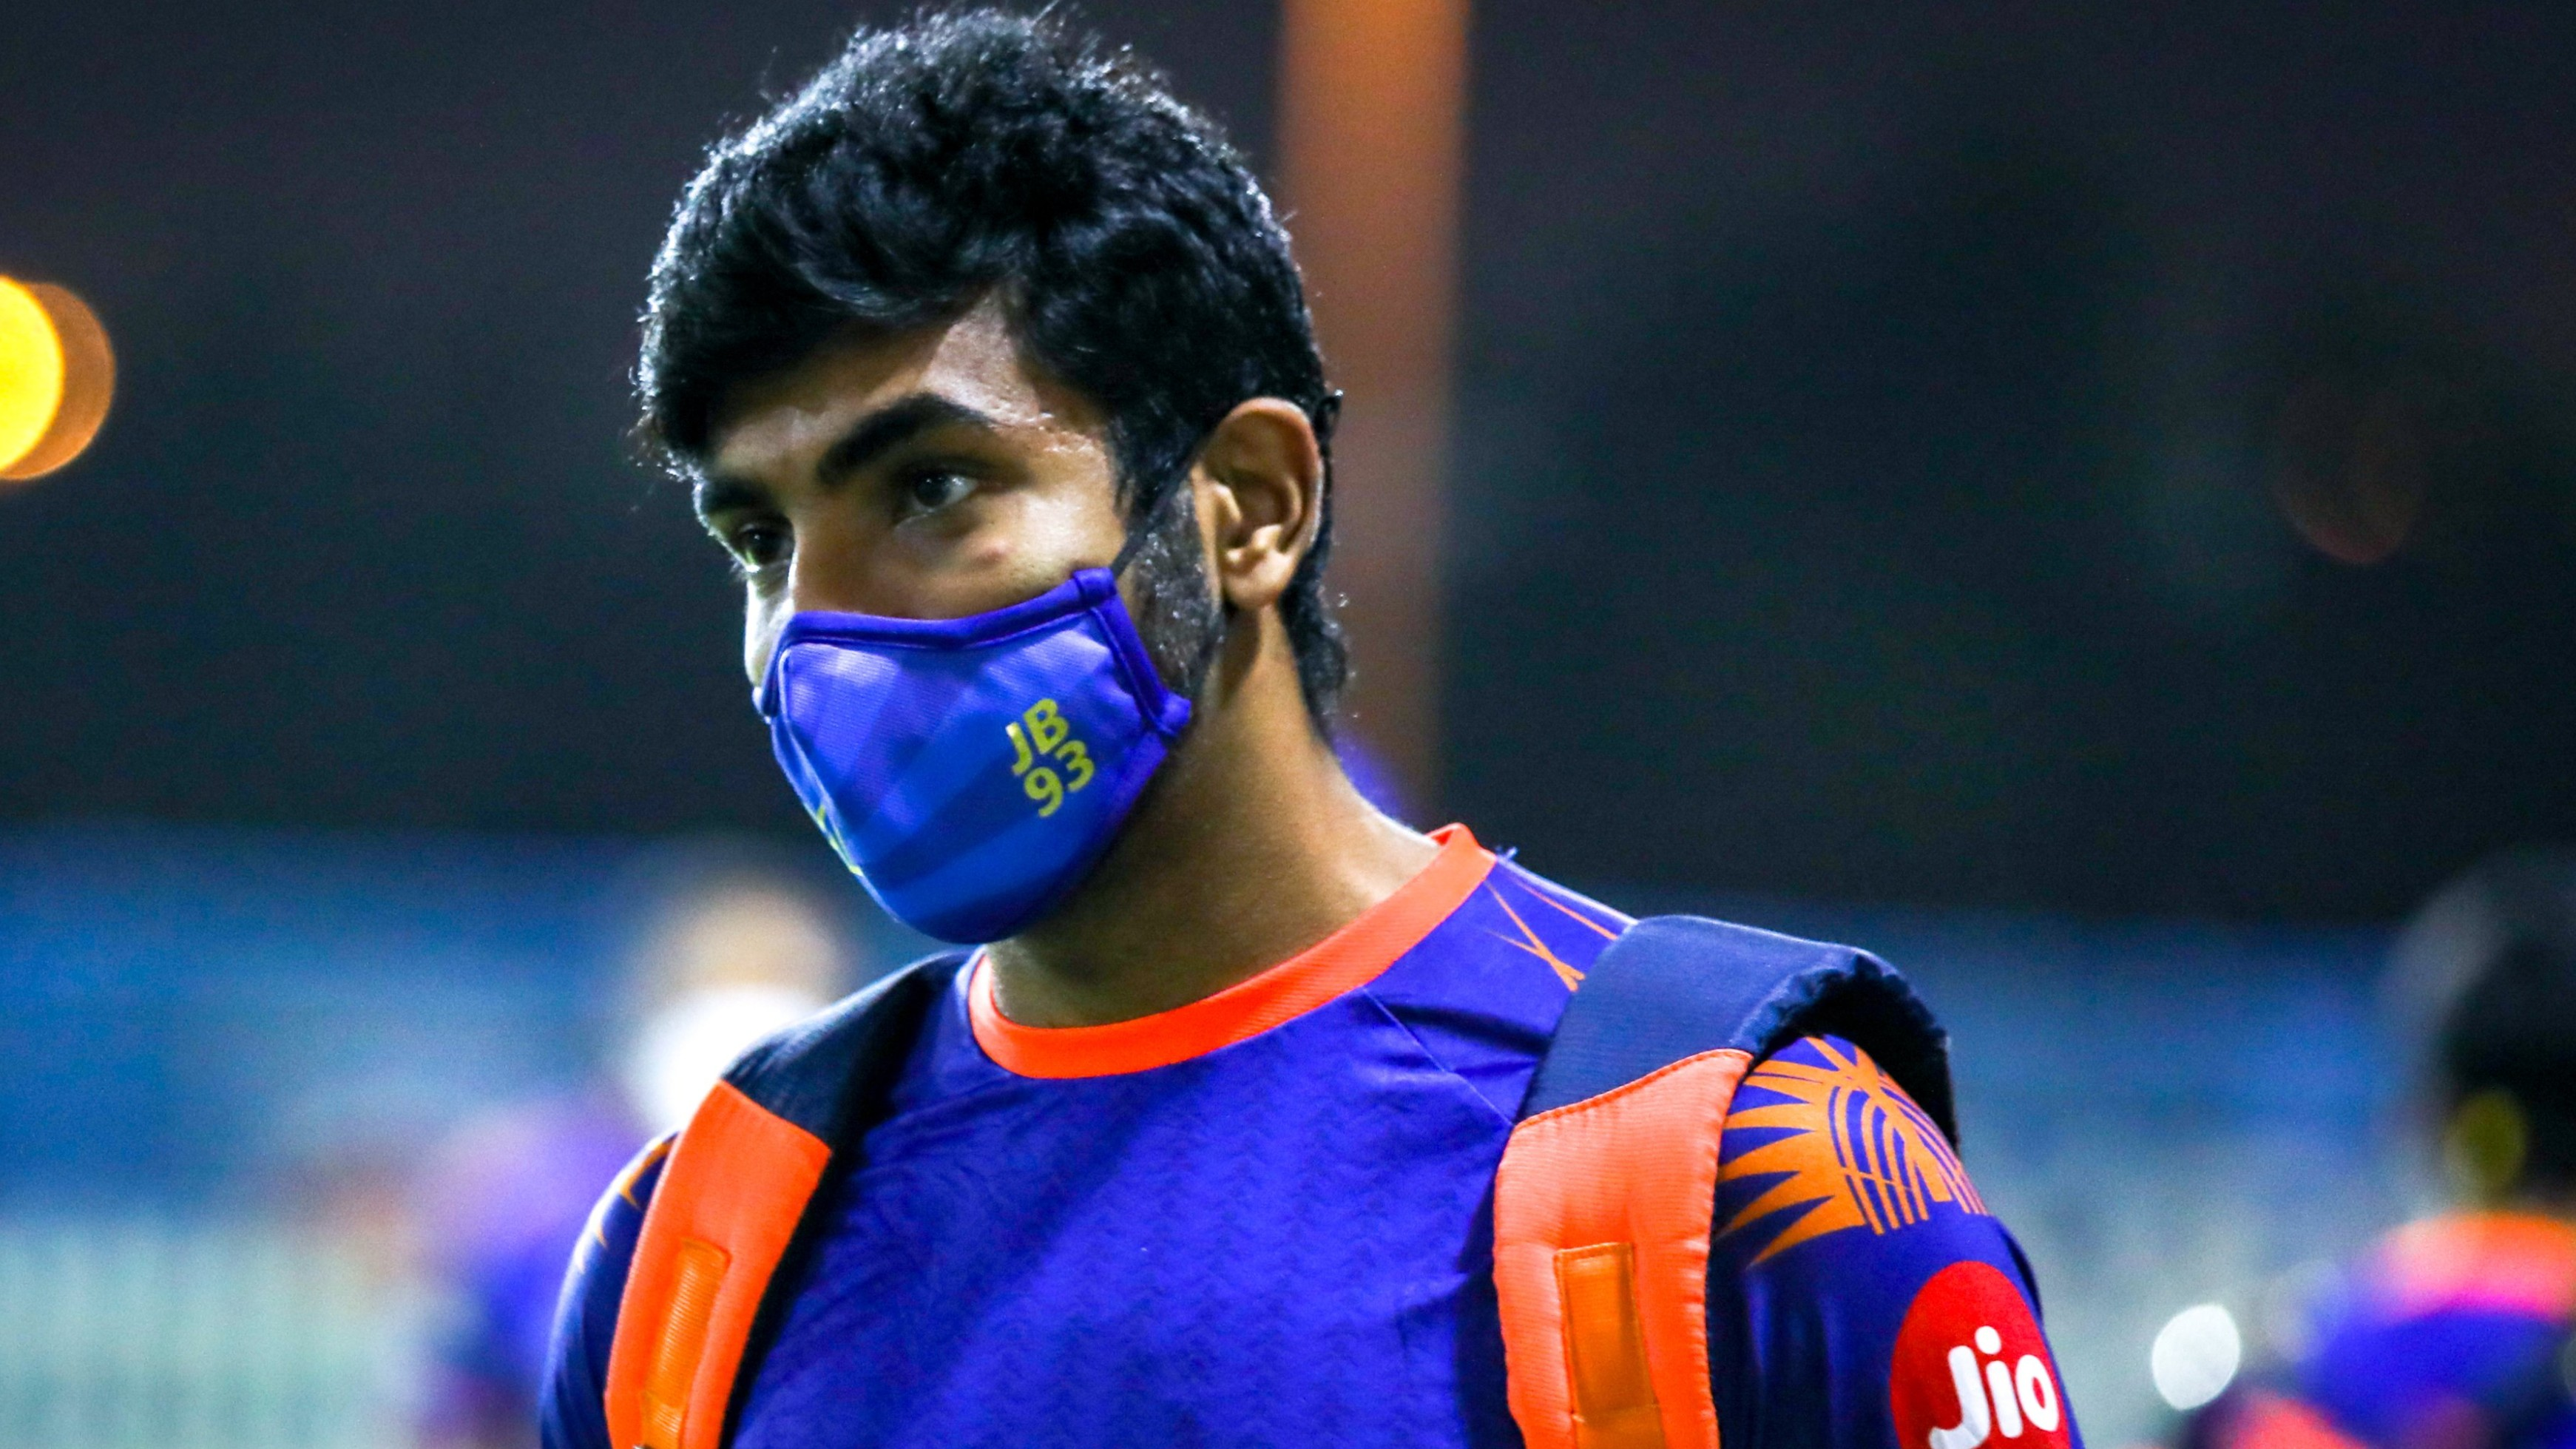 IPL 2020: Players, officials and family members to wear contact tracing badges, as per reports